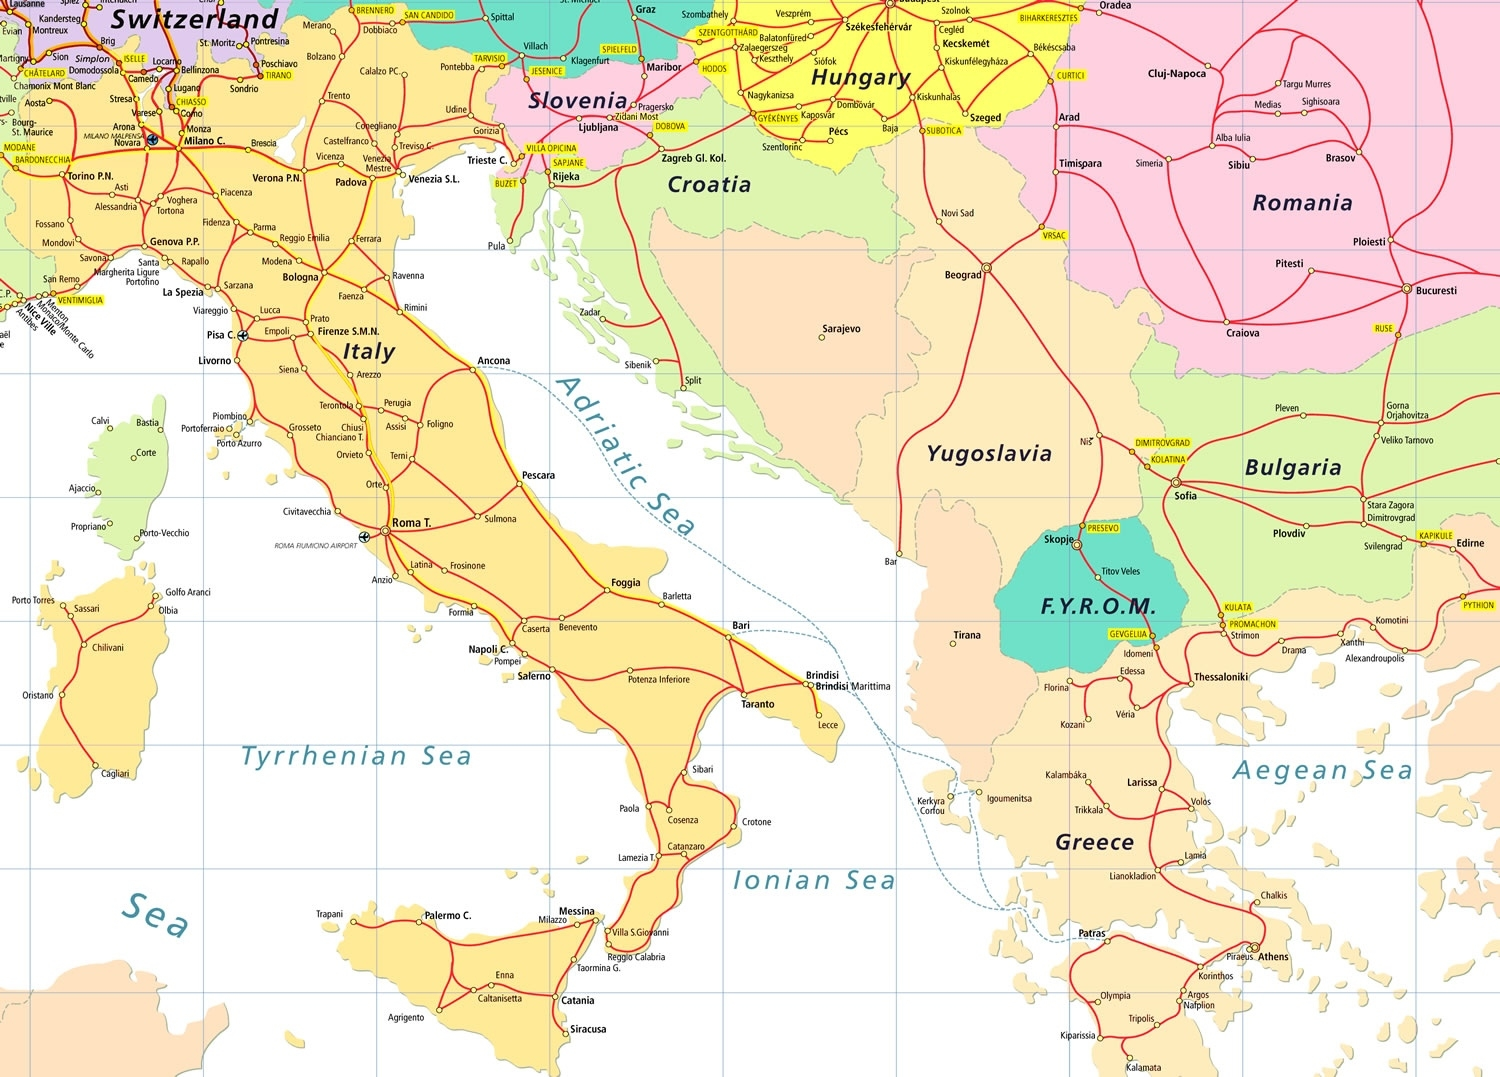 Index Of /images/rail regarding Greece To Germany Train Map